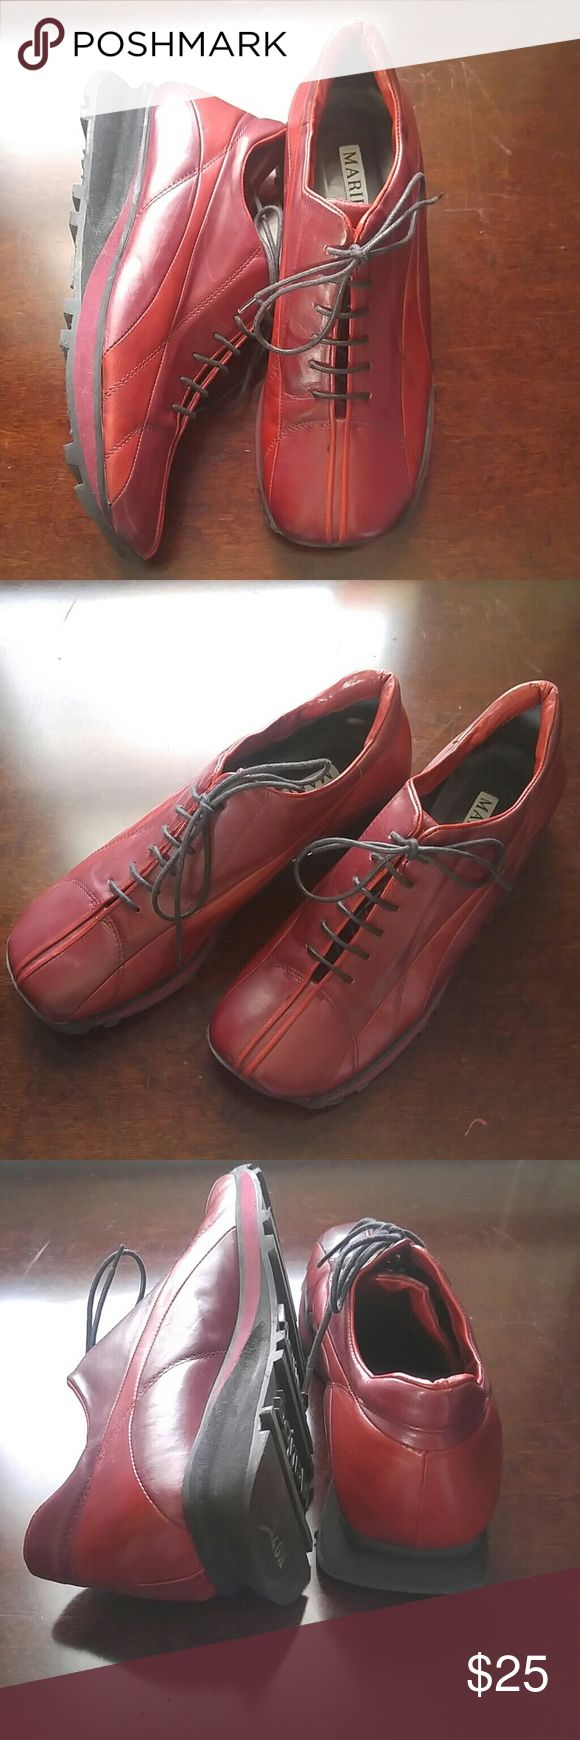 Red Lace Up Italian Leather Shoes by Maripe Red Lace Up Italian Leather Shoes by Maripe  Wonderful Condition! Ultra Comfortable. Lace Up Front. Square Toe. Fabulous Style. Soft Italian Leather Upper.  Rubber Walking Sole. maripe Shoes